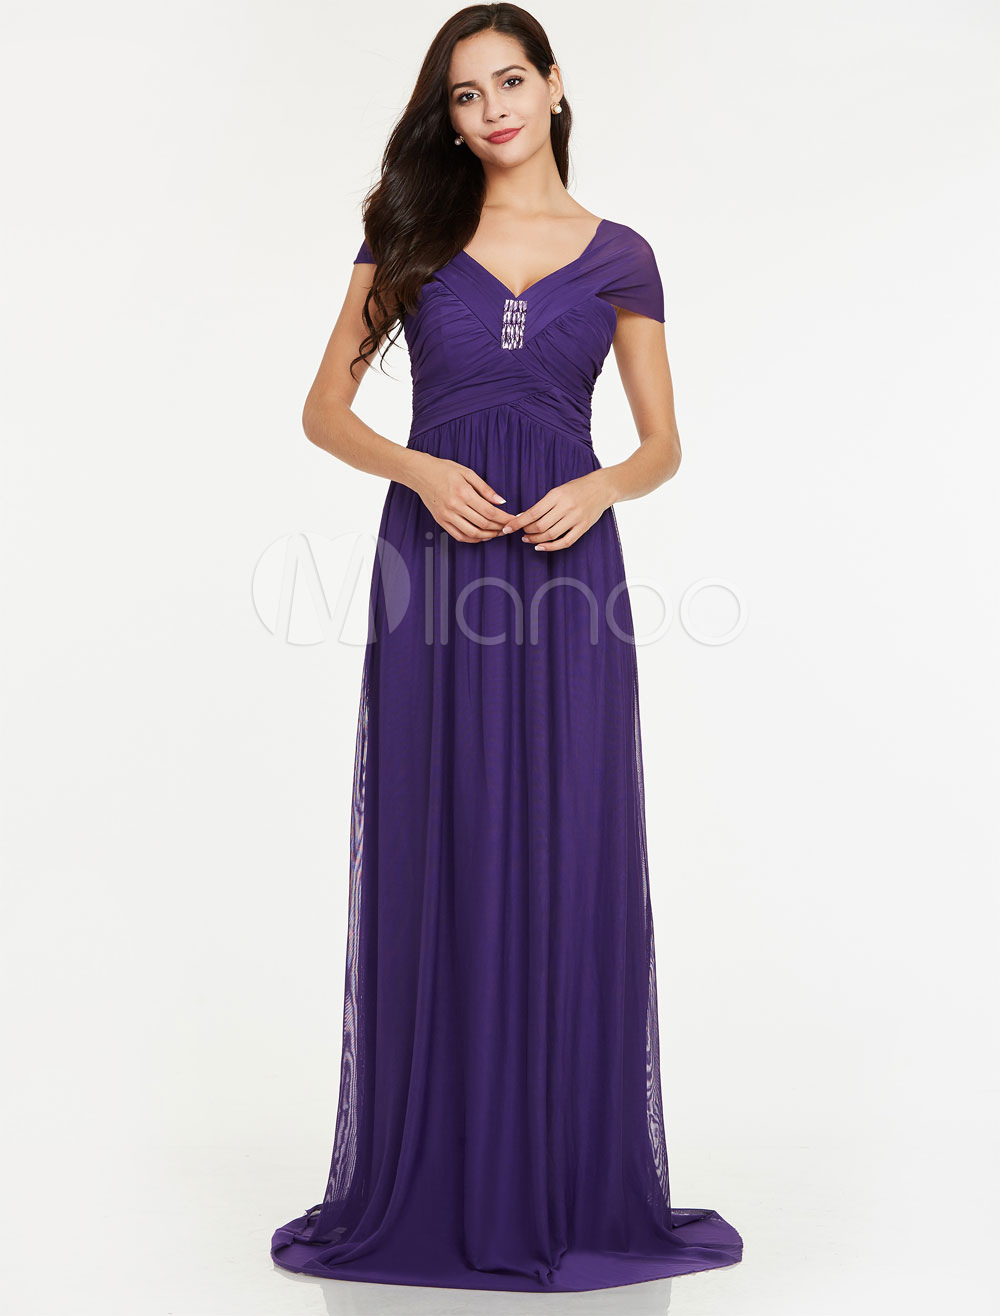 Lavender Bridesmaid Dresses Long Prom Dresses Chiffon Ruched Beading V Neck Floor Length Wedding Party Dress (Cheap Party Dress) photo